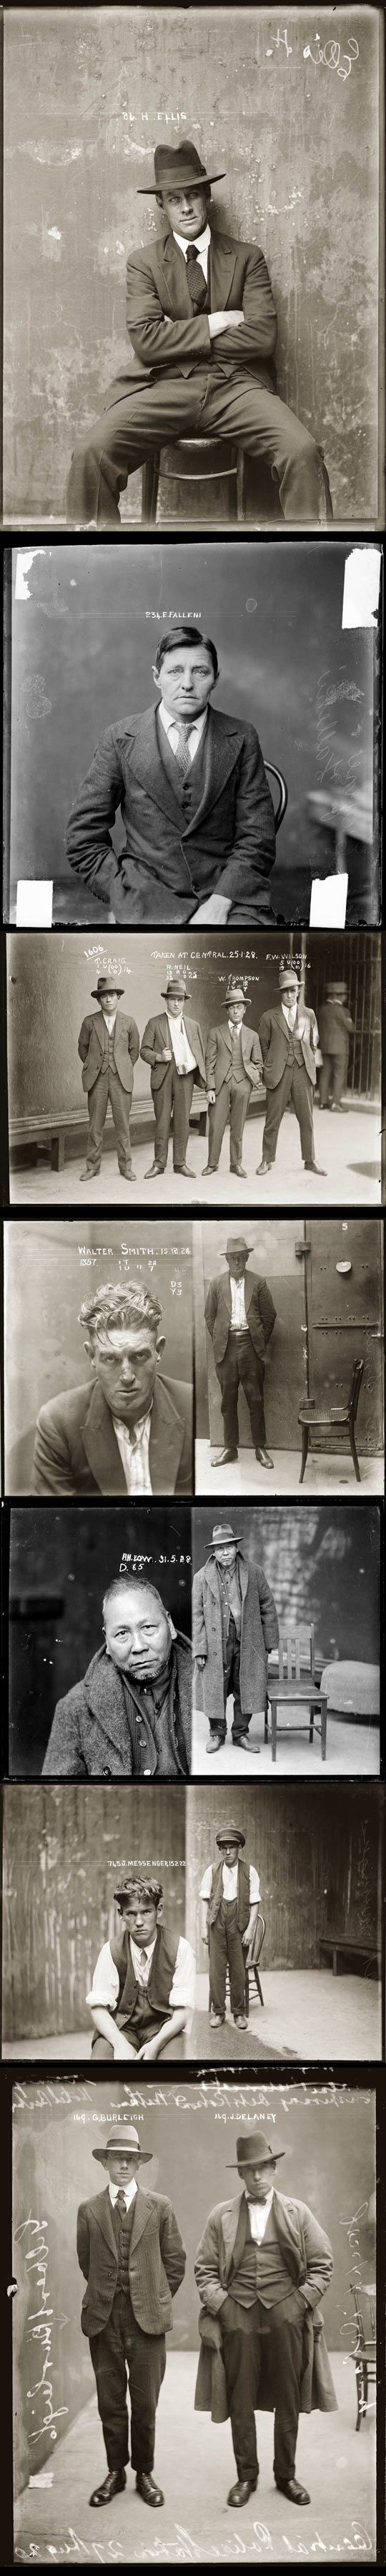 Police mugshots in the 1920s. Watch the baselines for text. Most would make awesome poses for guys though